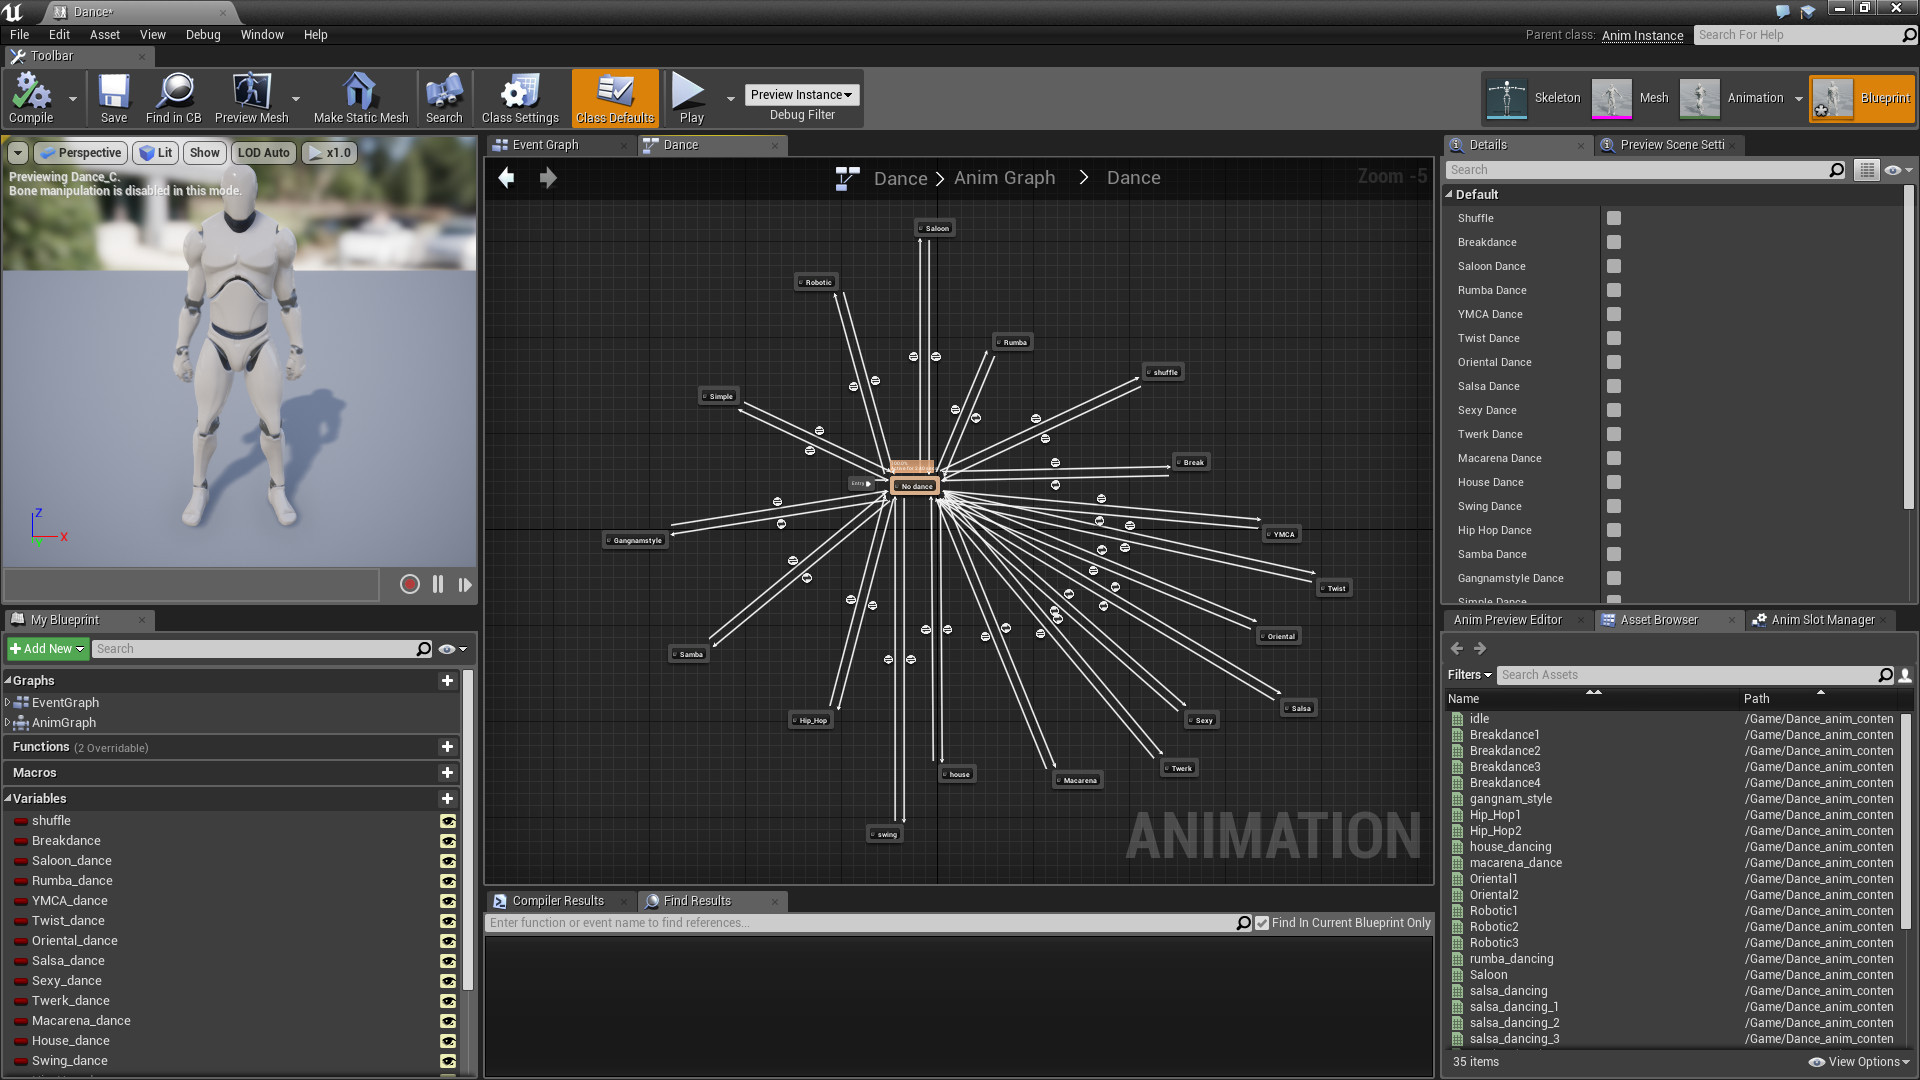 Dances animations pack by terribilis studio in animations ue4 share malvernweather Gallery